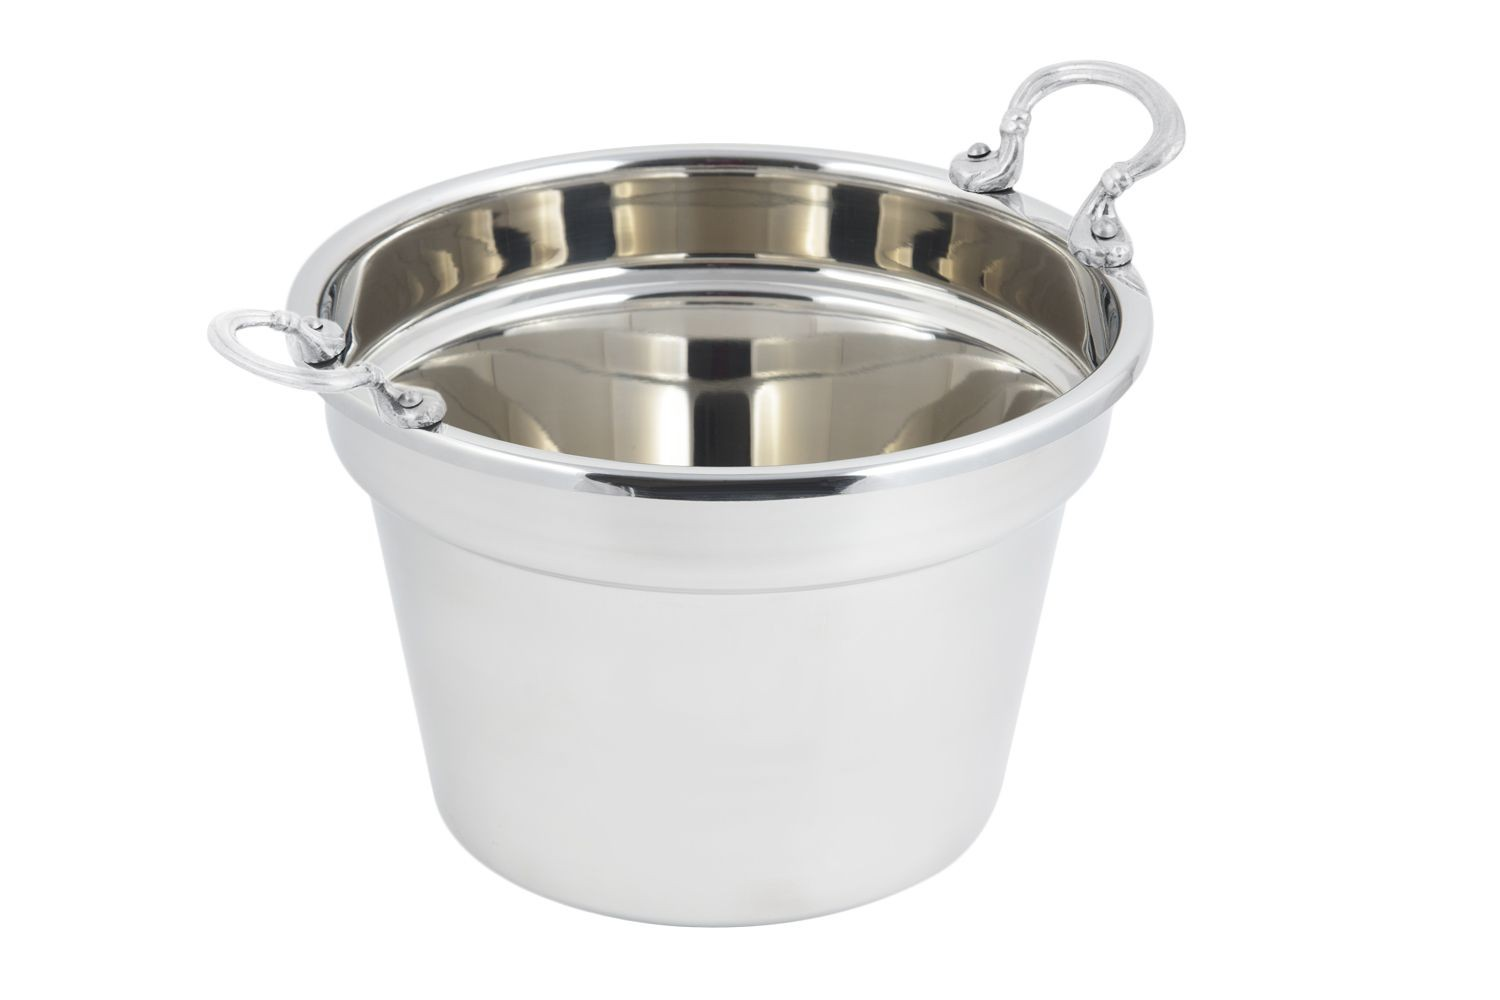 Bon Chef 5214HRSS Plain Design Soup Tureen with Round Stainless Steel Handles, 11 Qt.